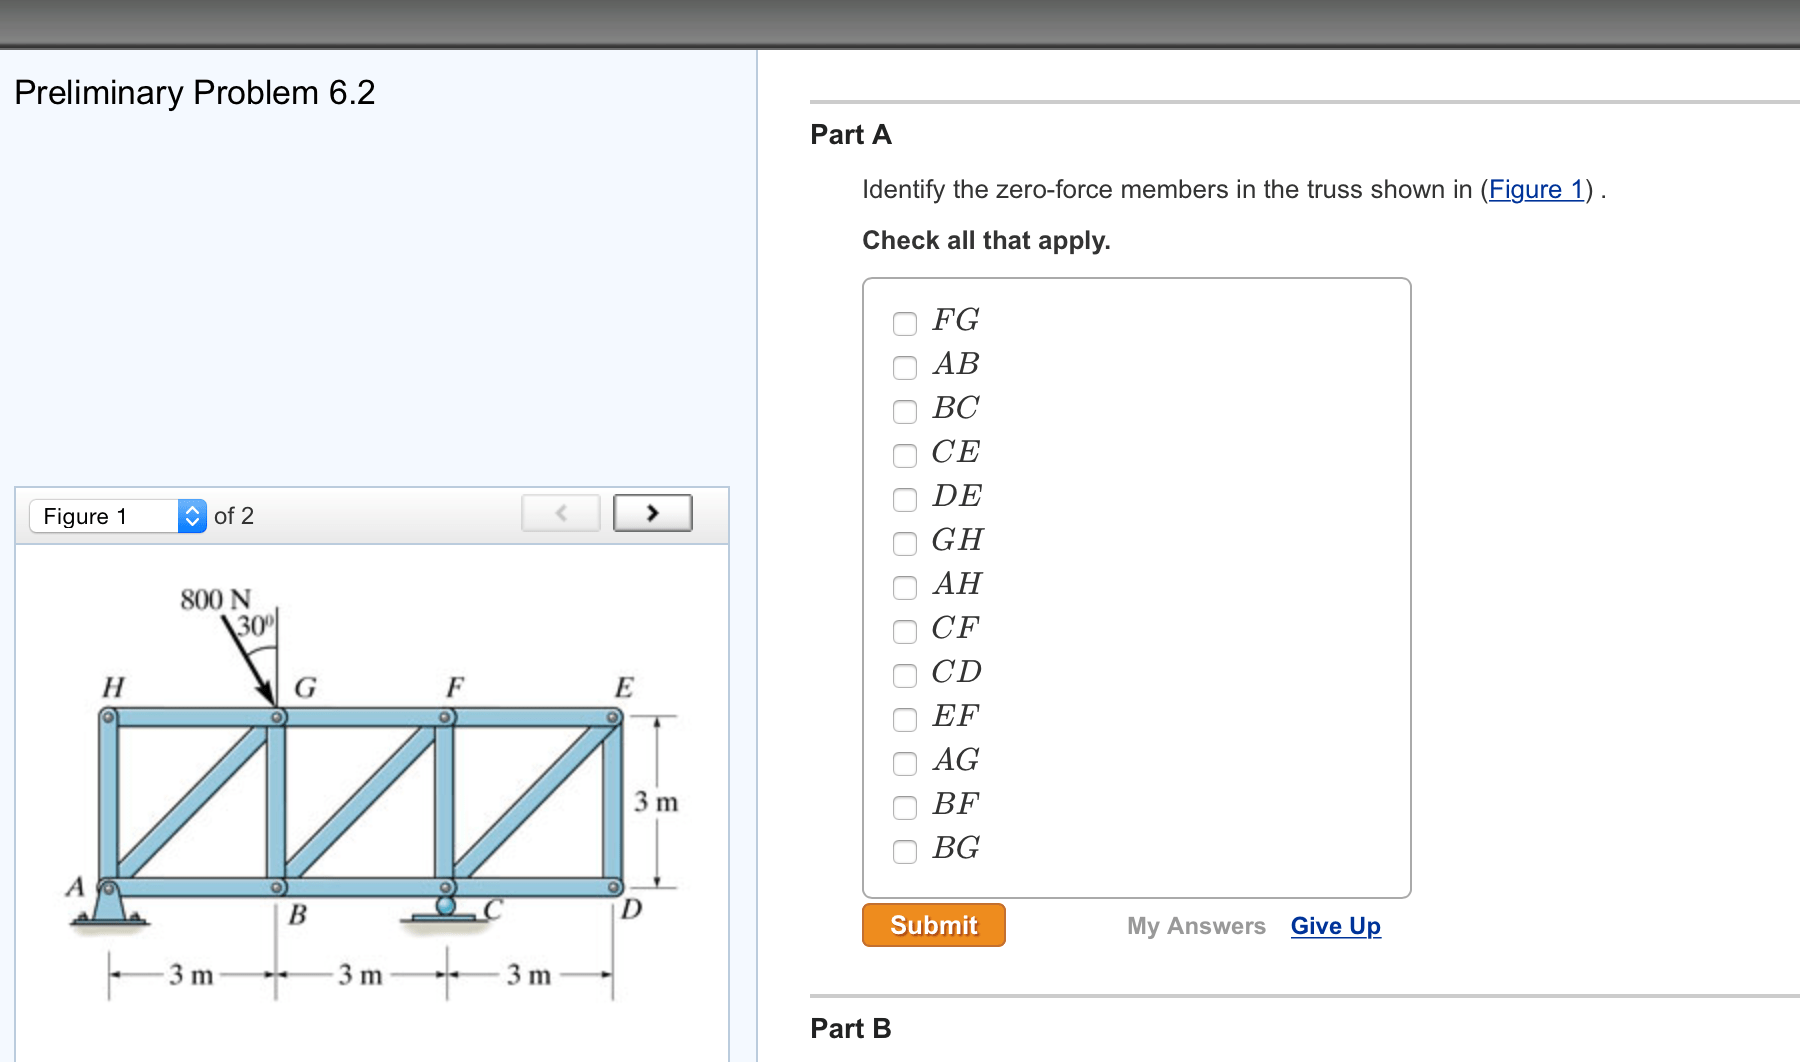 Solved: Identify The Zero-force Members In The Truss Shown